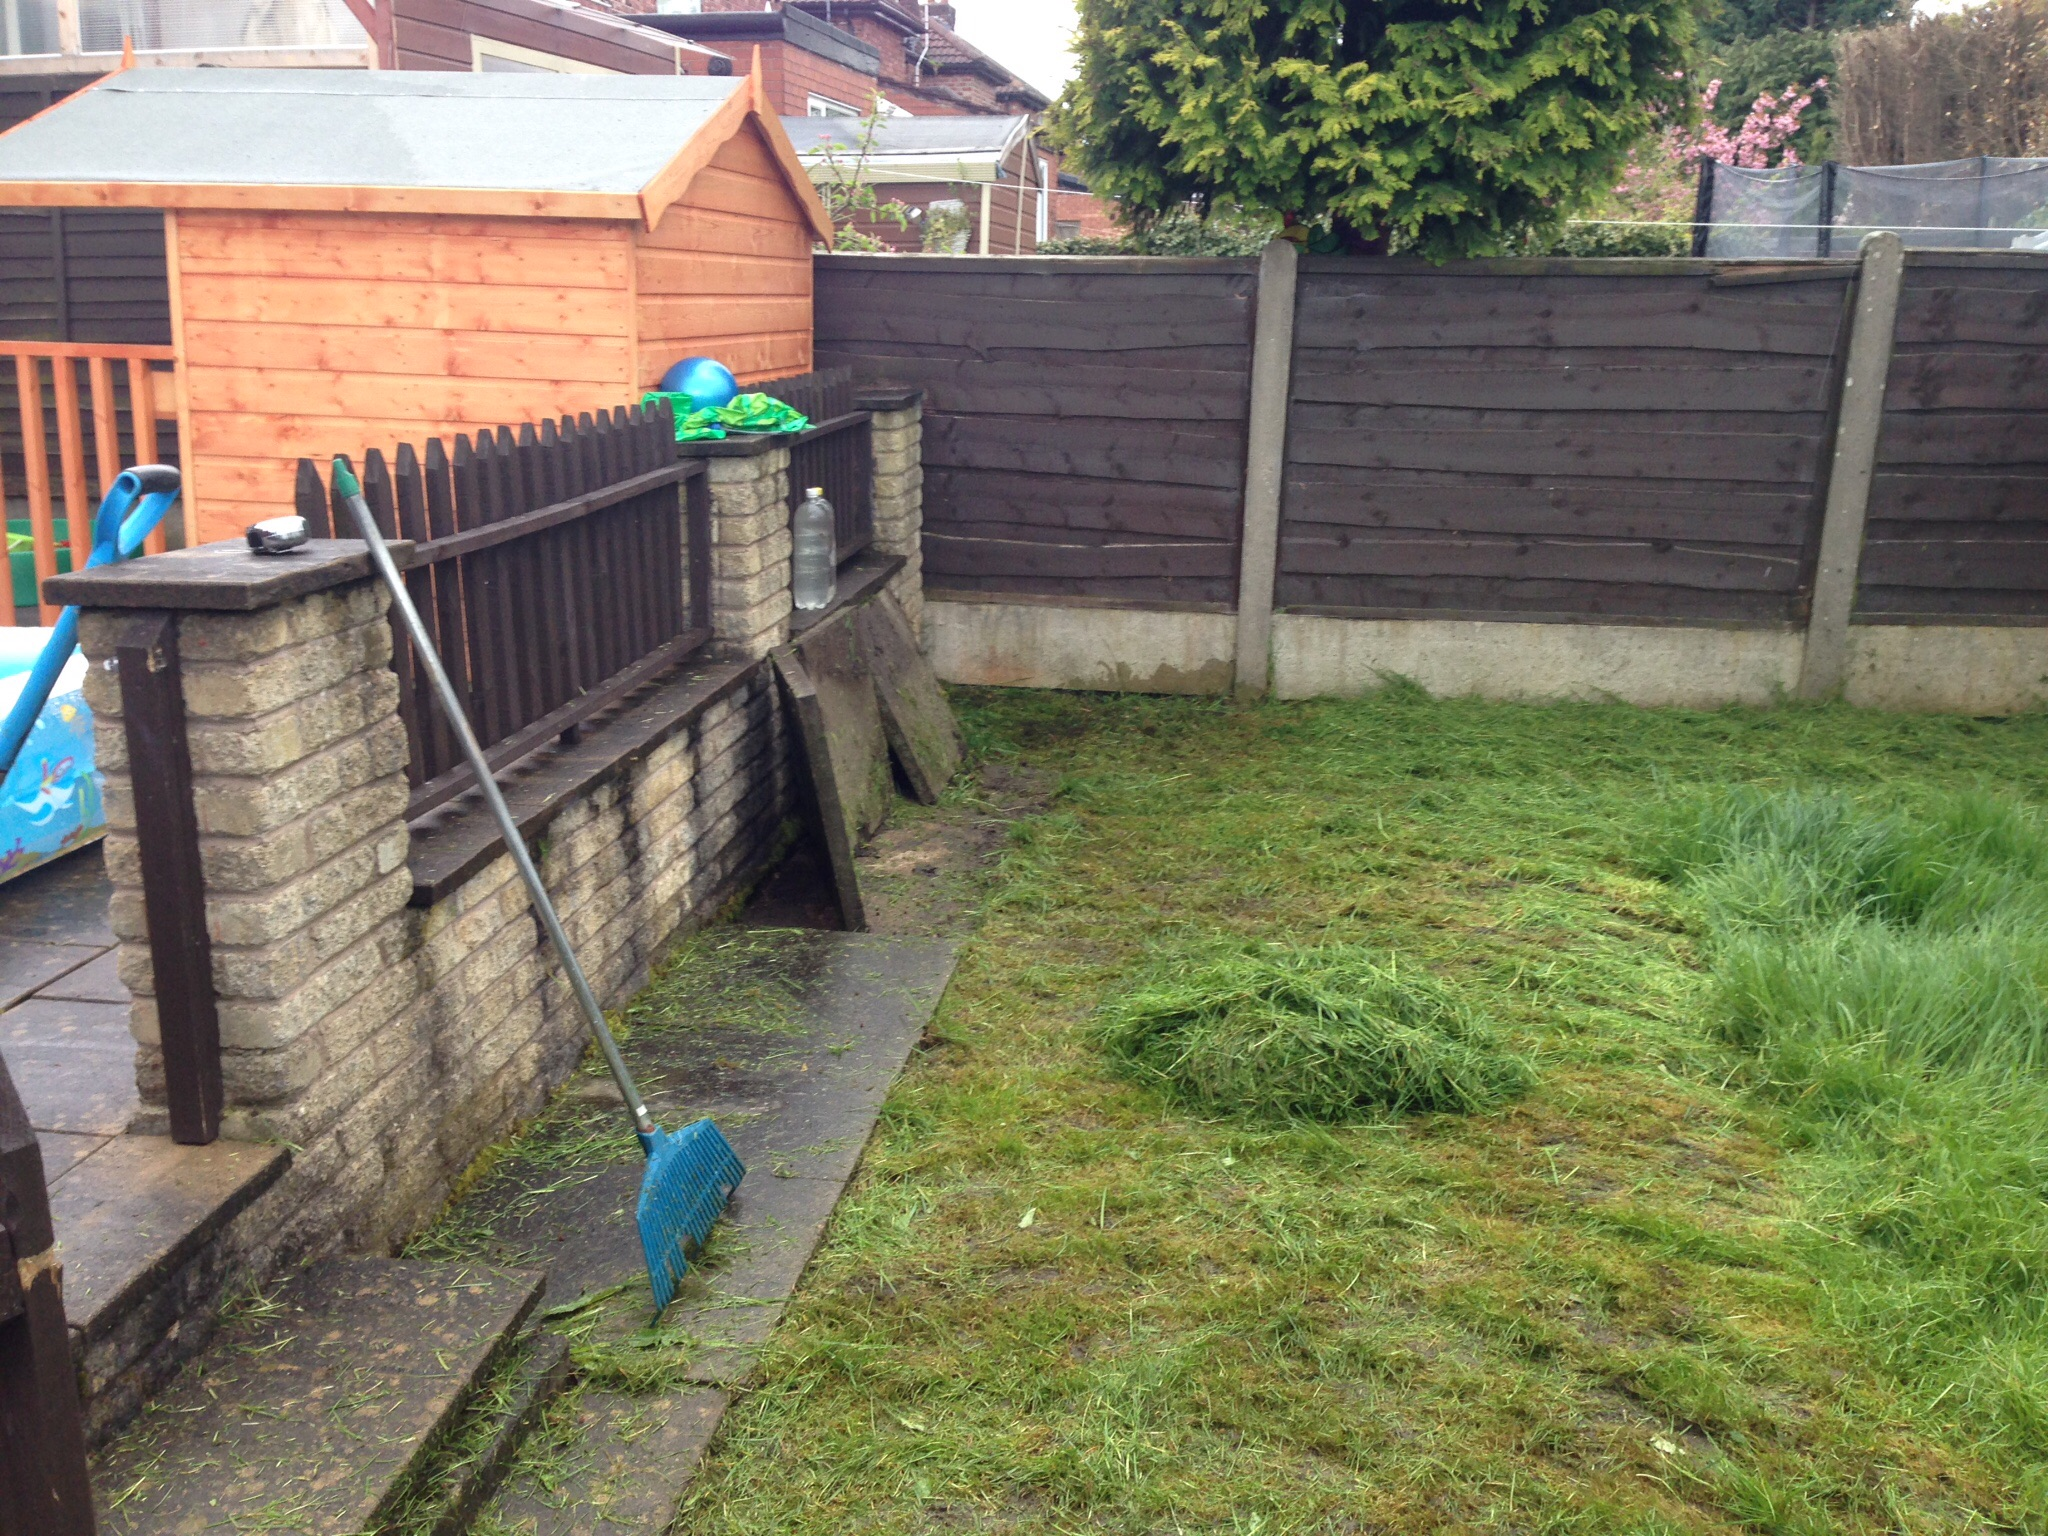 Landscaping Muddy Yard : Muddy lawn transformed into a childs safer play area